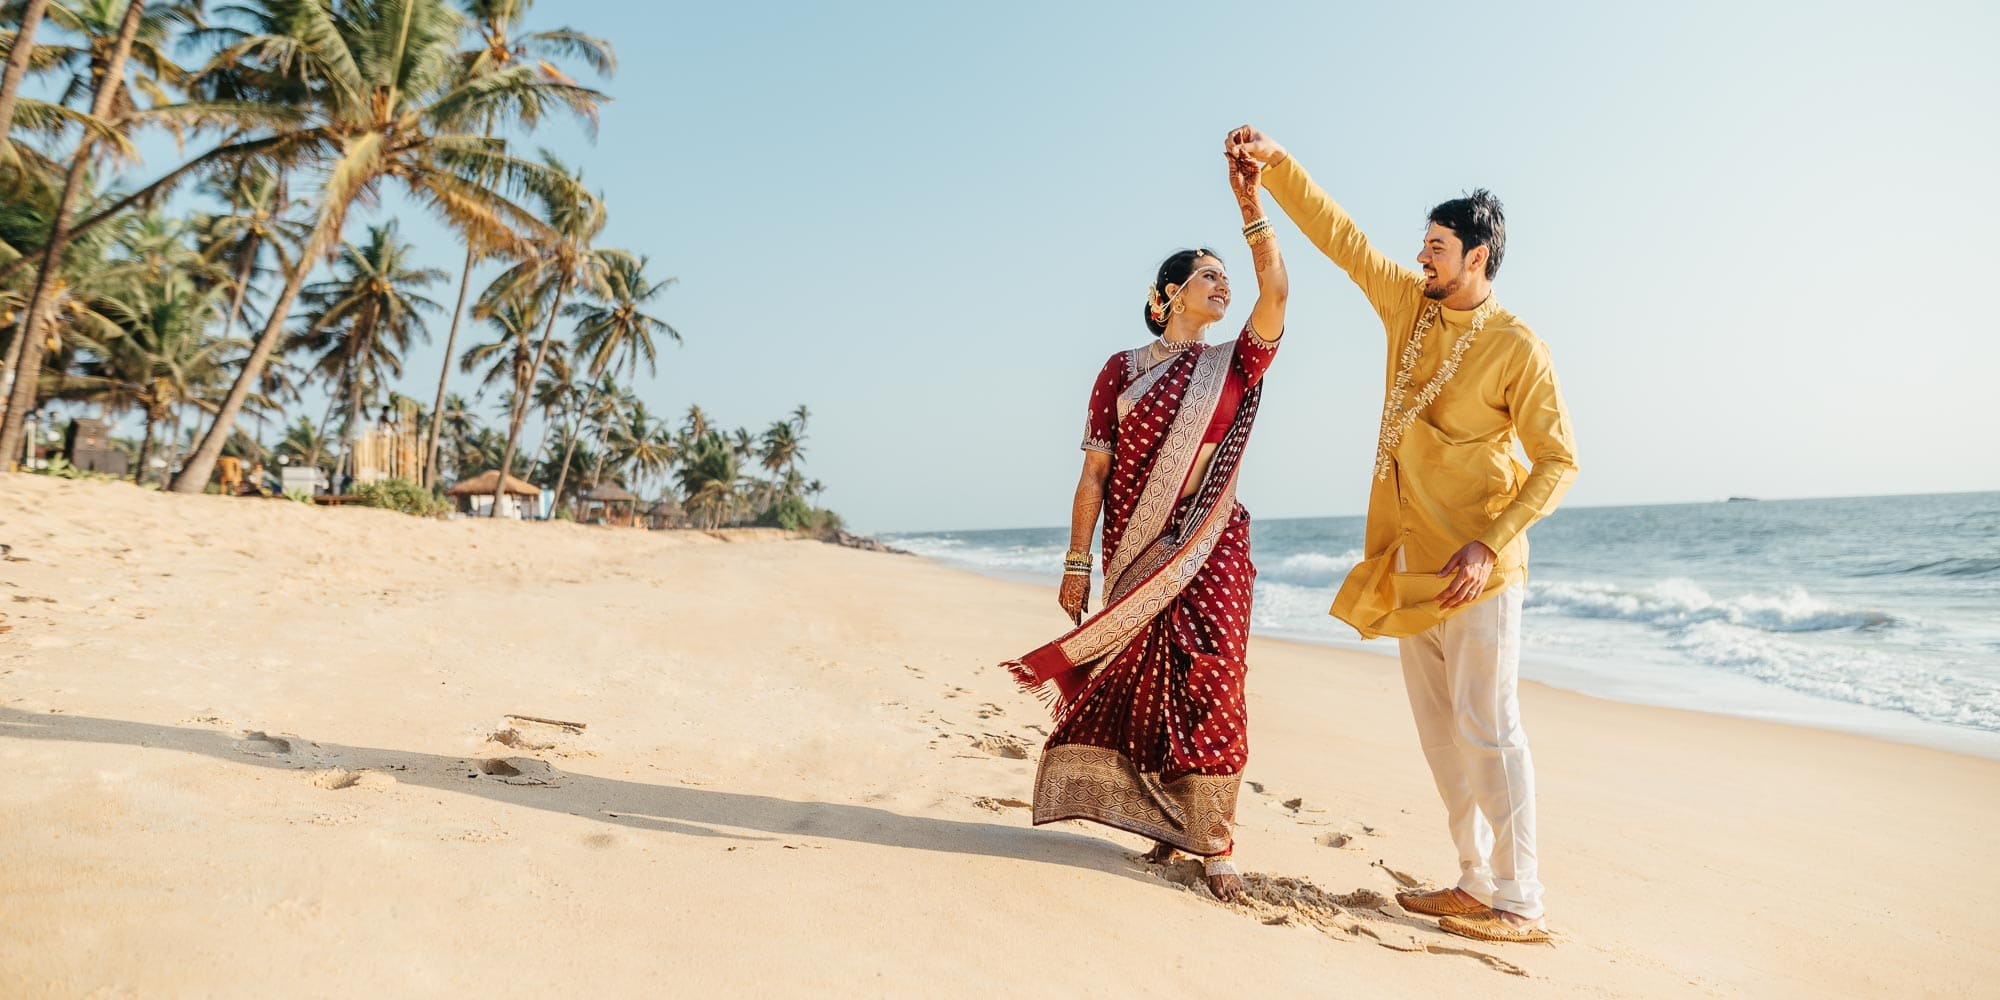 Asian bride and groom dancing on tropical beach in India